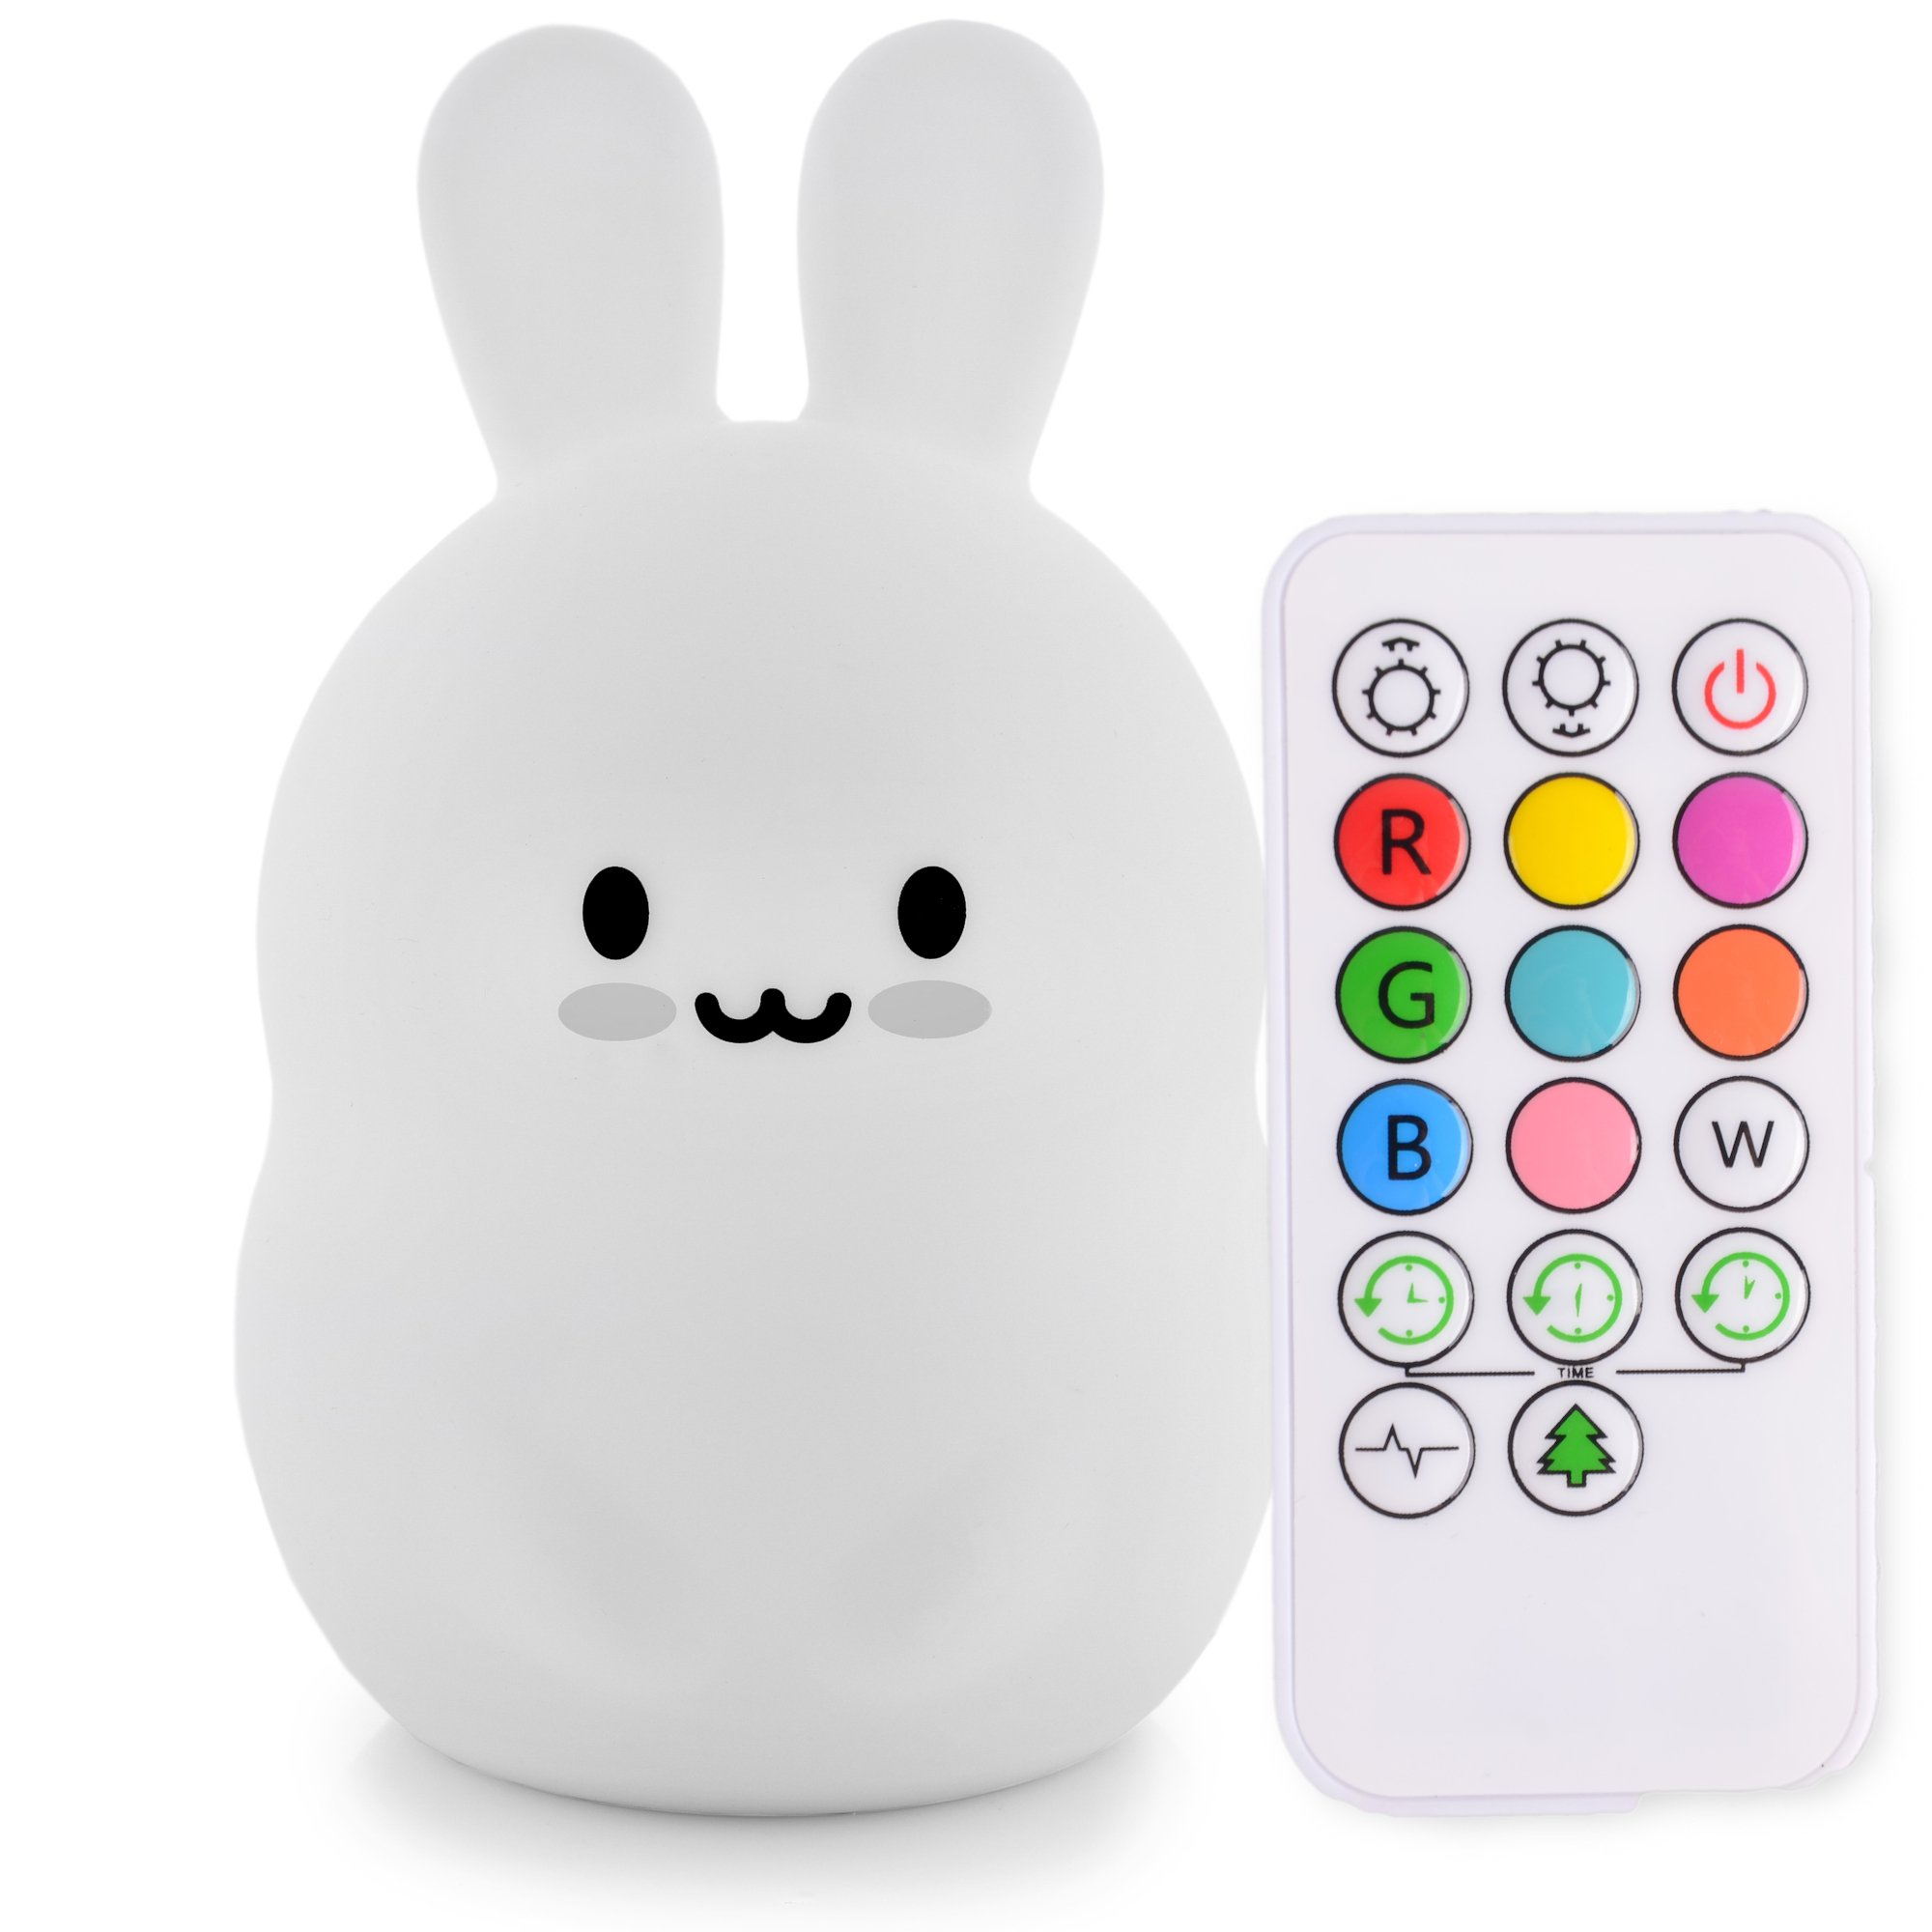 LED Nursery Night Lights for Kids: LumiPets Cute Animal Silicone Baby Night Light with Touch Sensor and Remote - Portable and Rechargeable Infant or Toddler Cool Color Changing Bright Nightlight Lamp by Lumipets